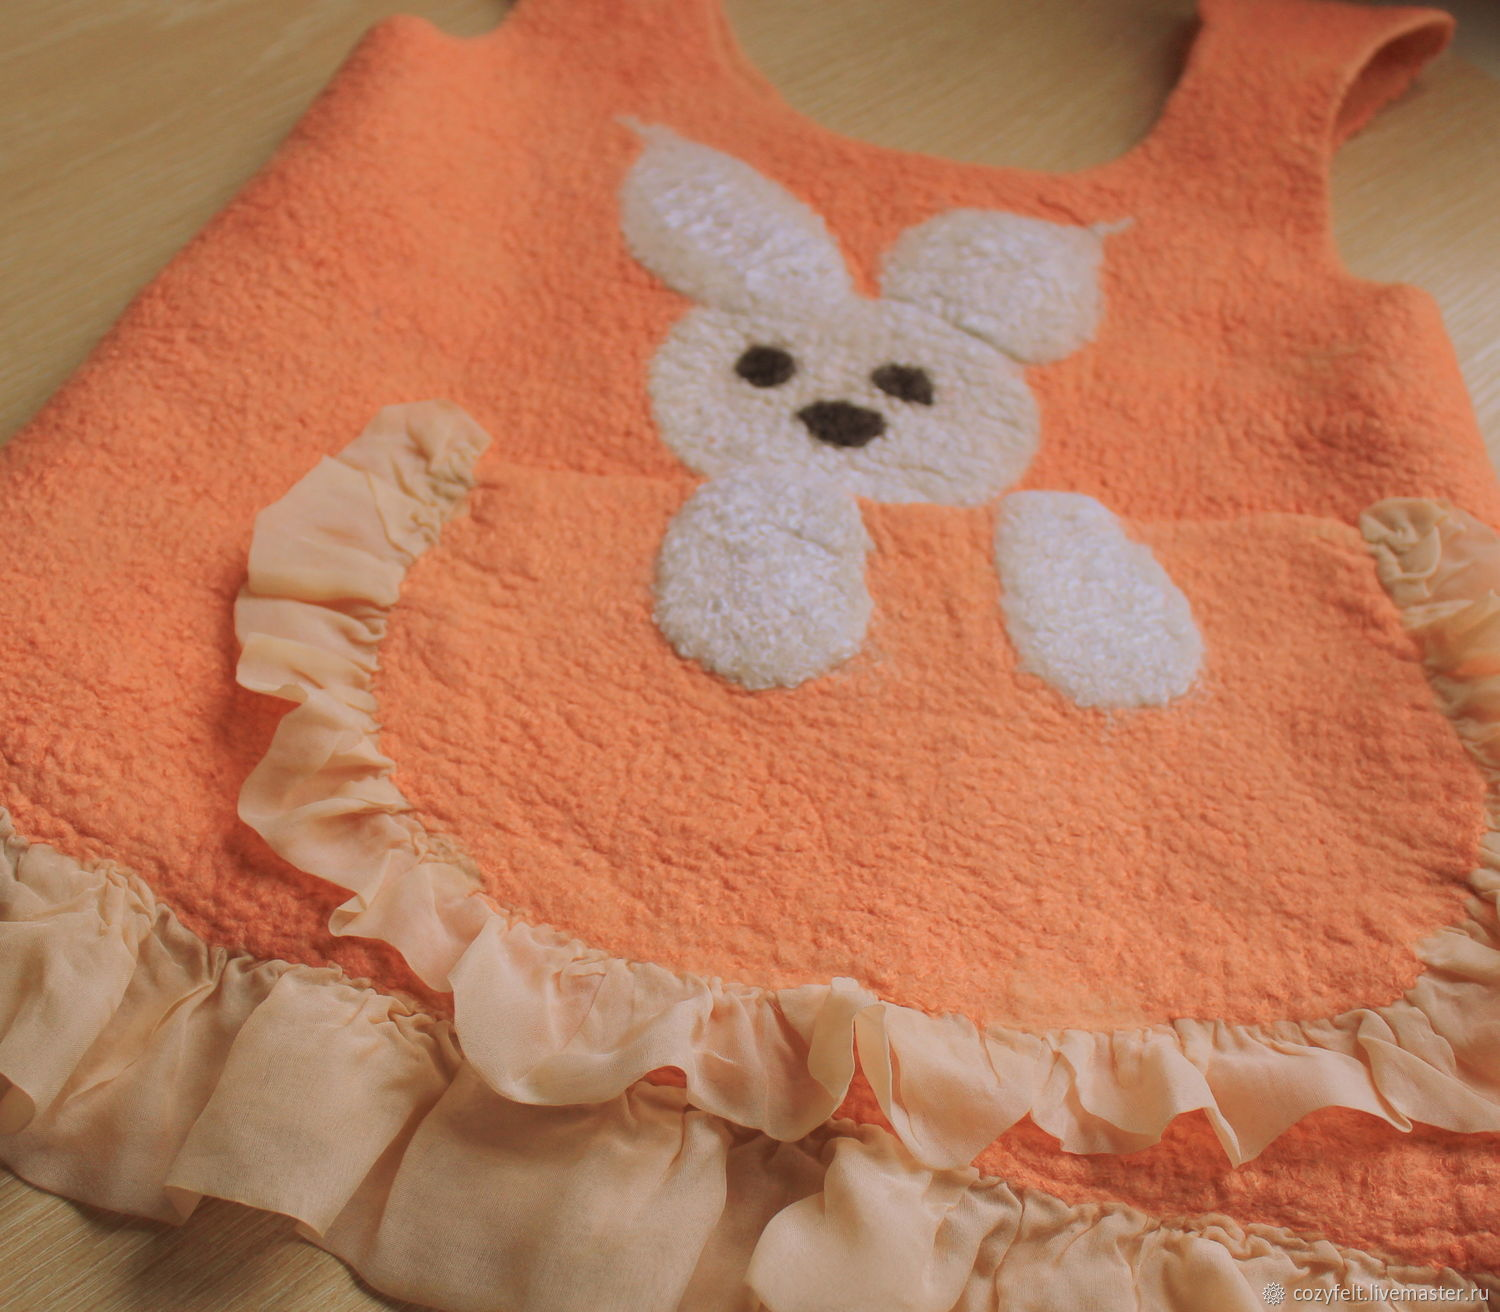 "Sundress for girls "" Bunny in the pocket"""